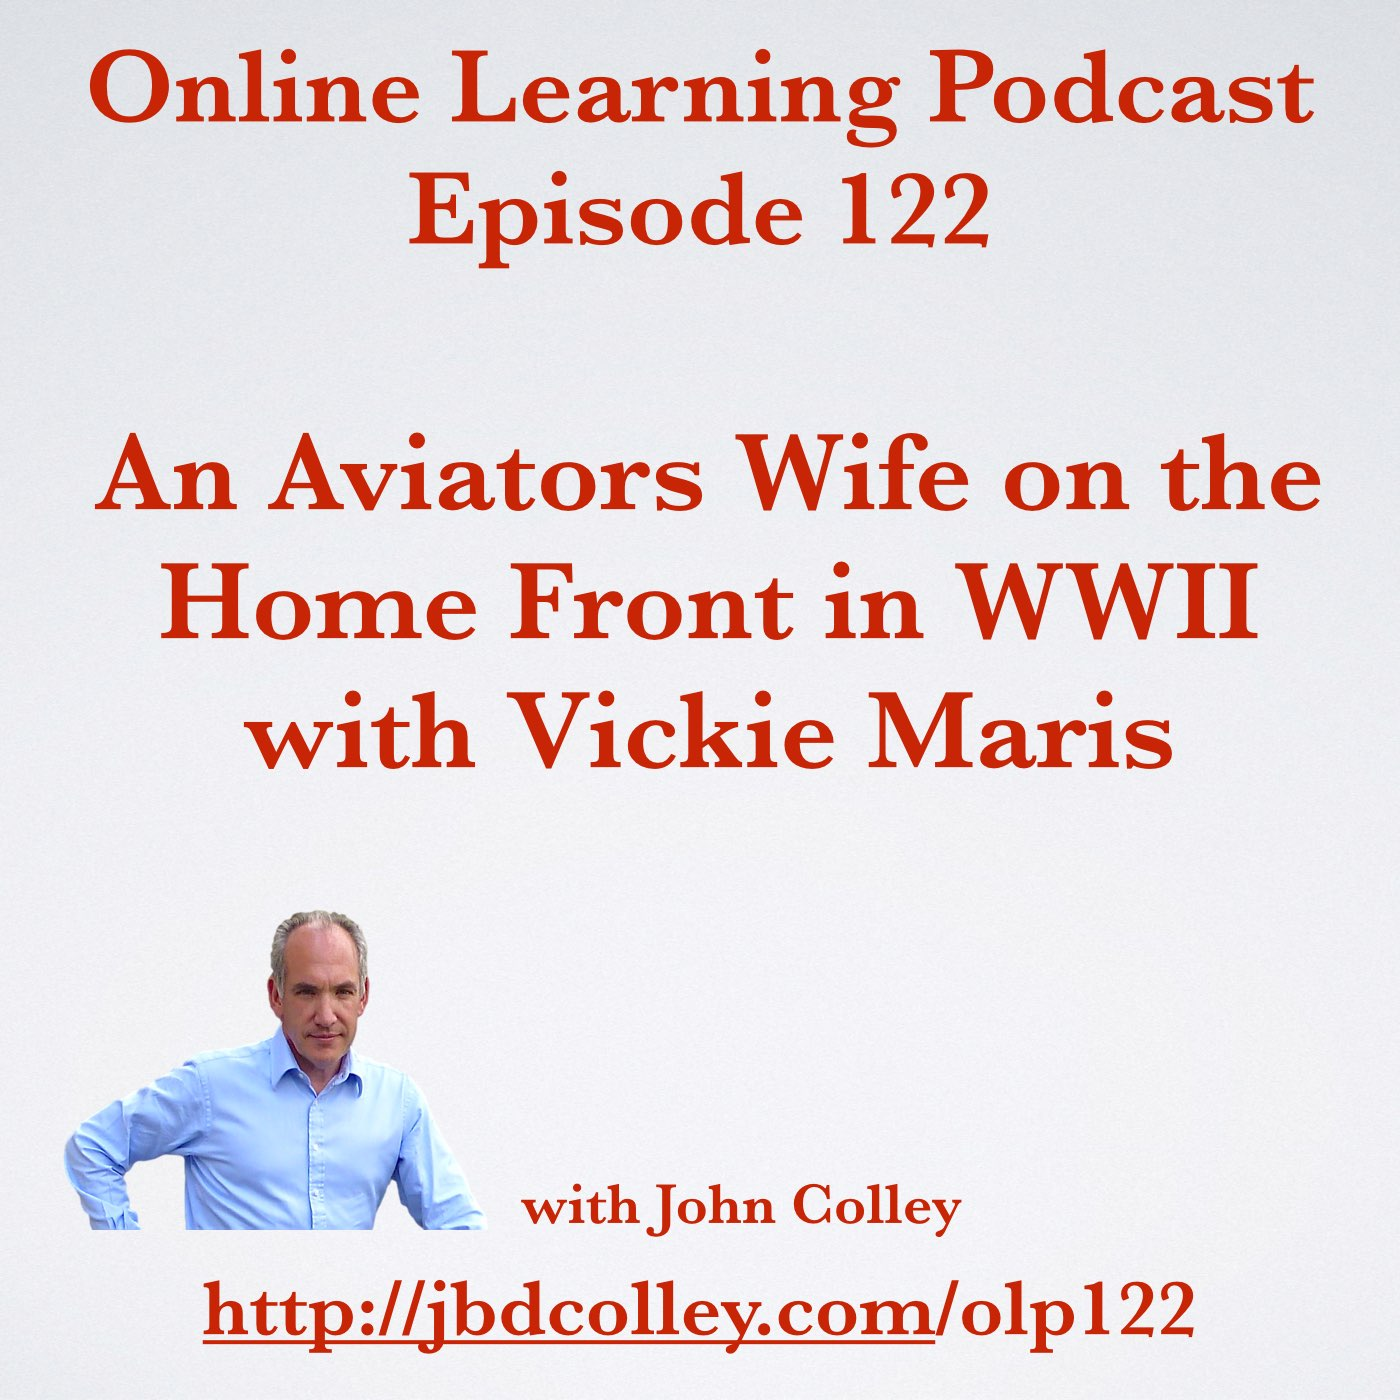 An Aviators Wife on the Home Front in WWII with Vickie Maris